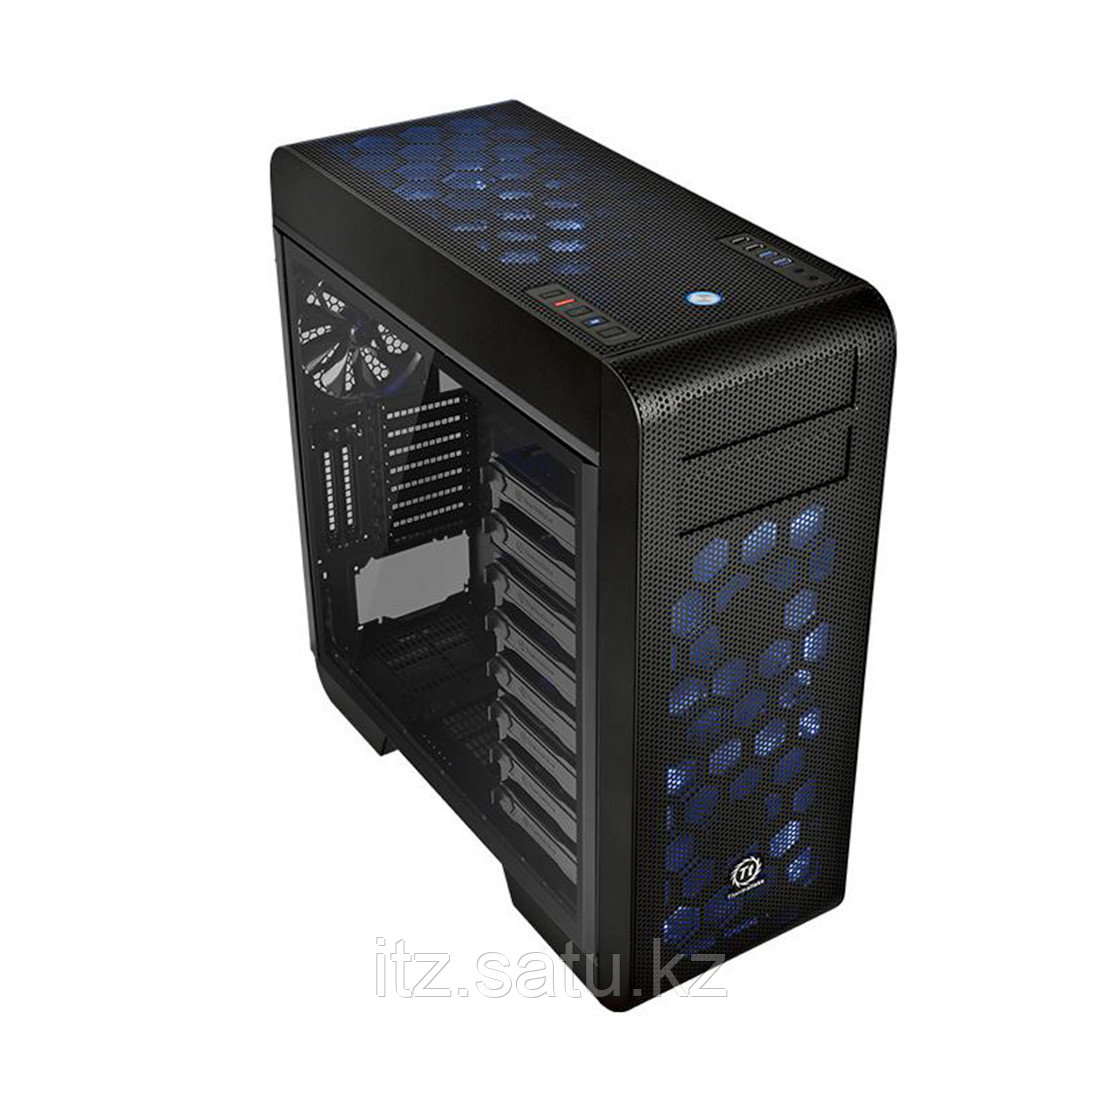 Компьютерный корпус Thermaltake Core V71 без Б/П